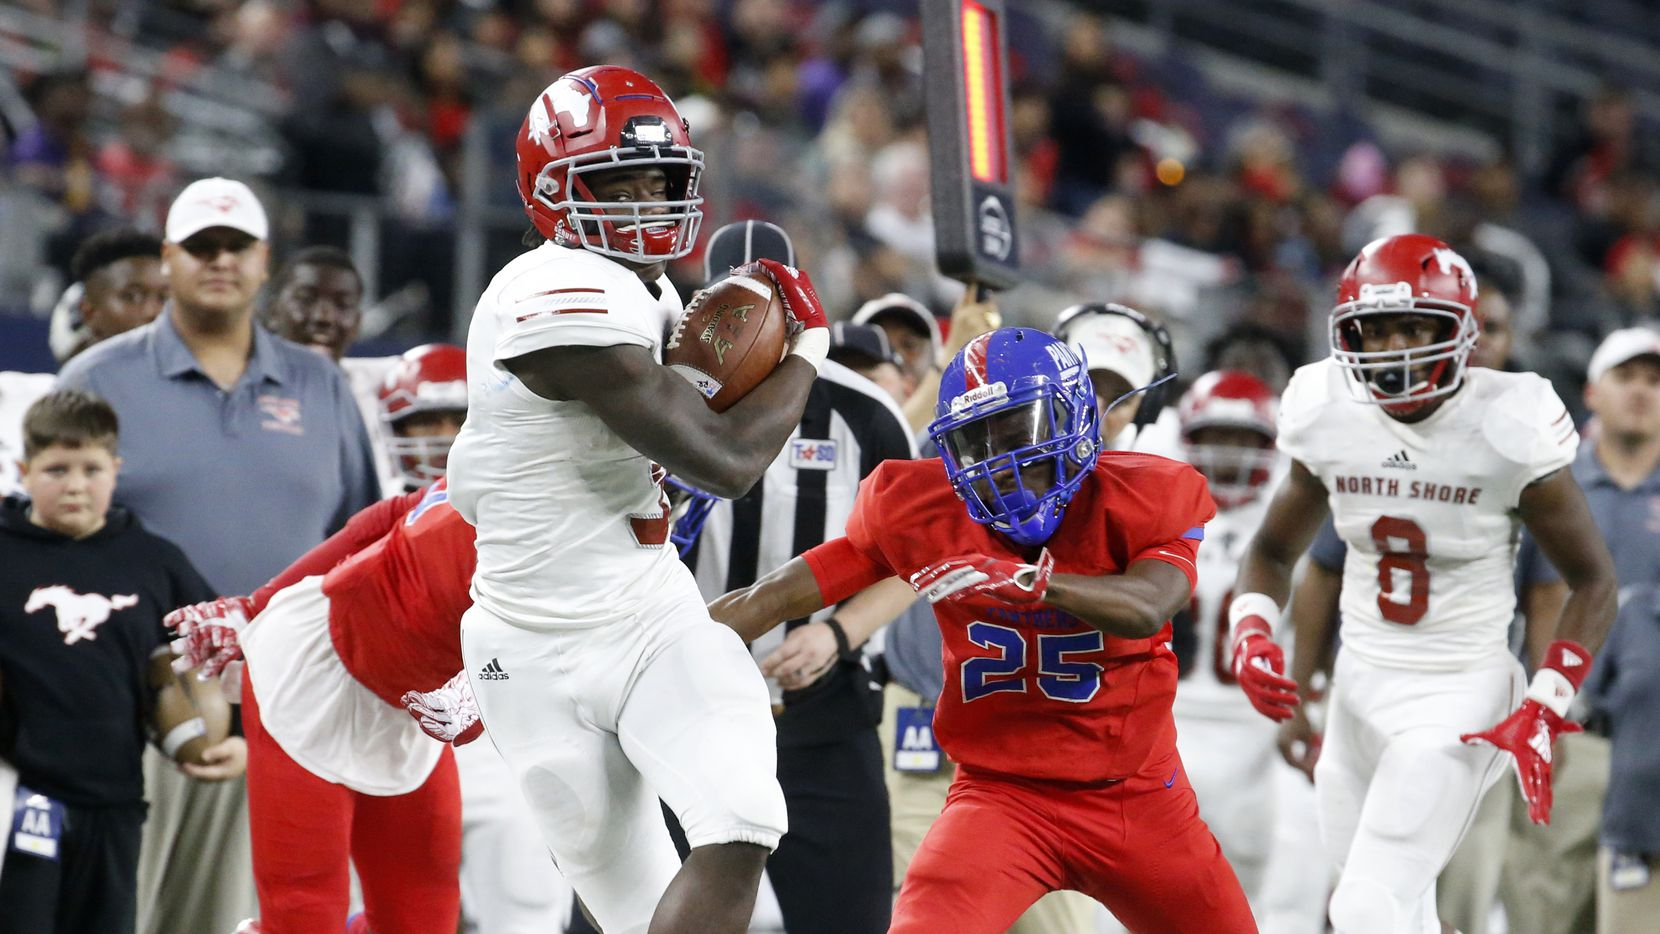 Galena Park North Shore's running back Zach Evans, pictured in 2018's Class 6A Division I state championship game against Duncanville, will not play in the rematch, according to various media reports.